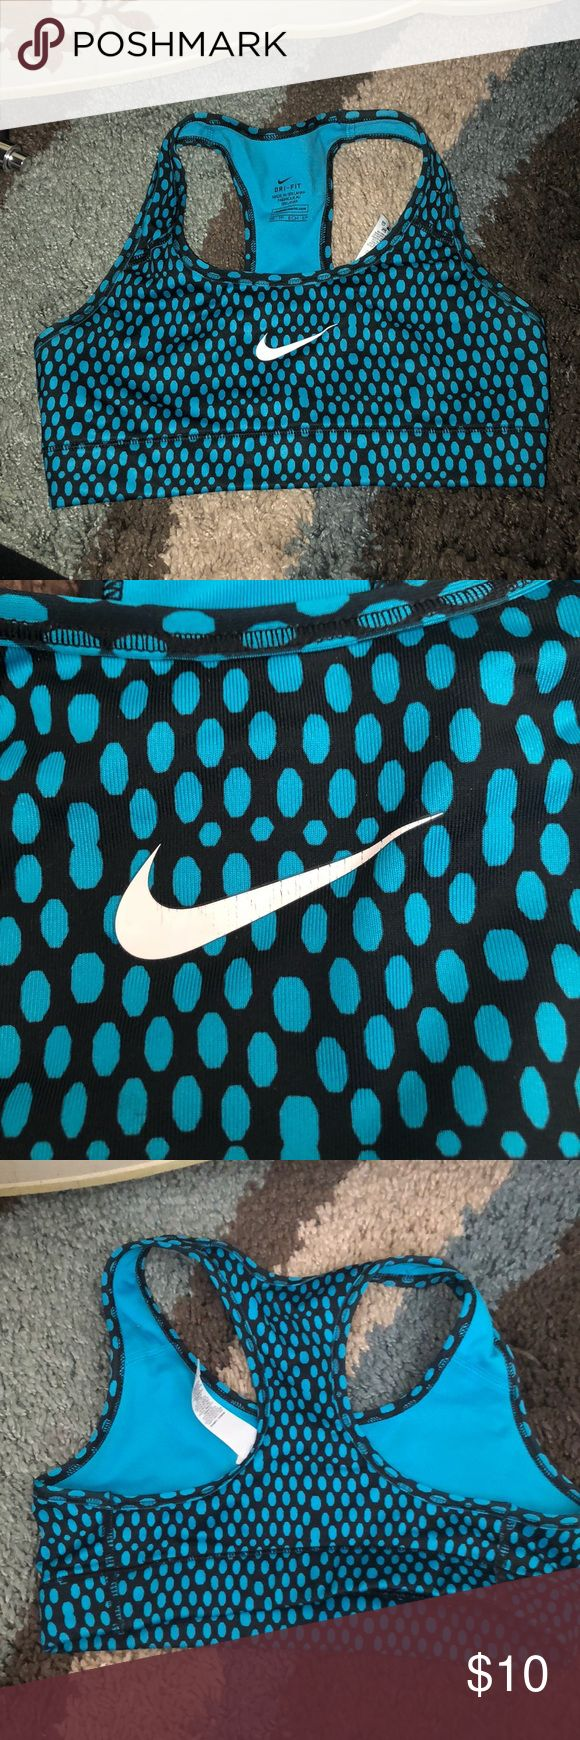 mike sports bra polka dot blue and black nike sports bra nike check has small cracks in but not noticeable FEEL FREE TO MAKE OFFERS Nike Intimates & Sleepwear Bras